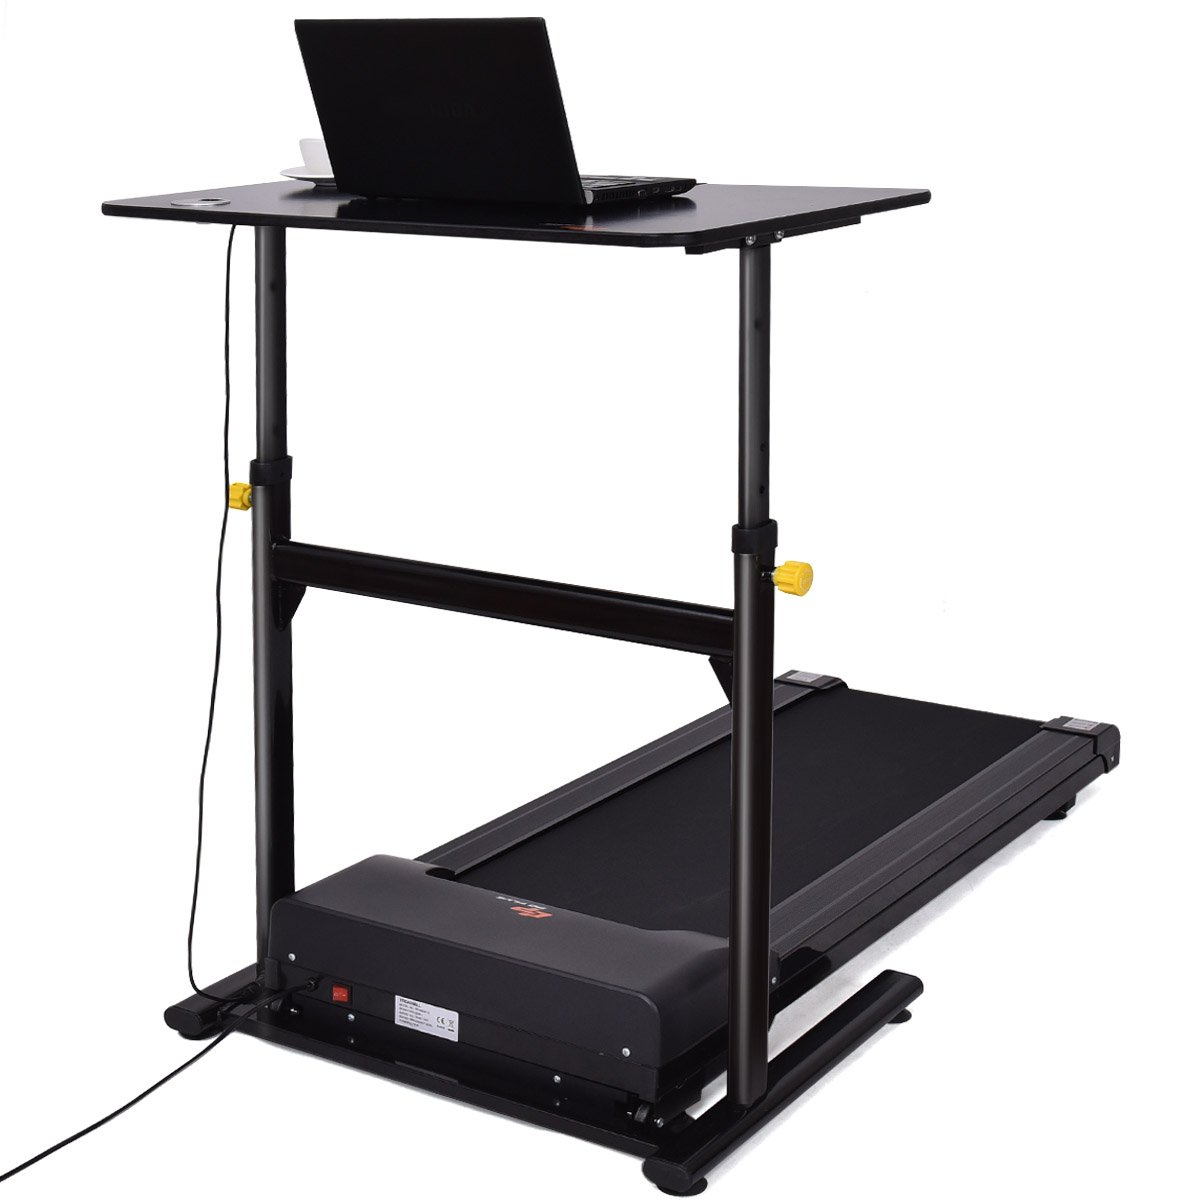 sport working decor while and desk loss treadmill reviews home doing design using weight